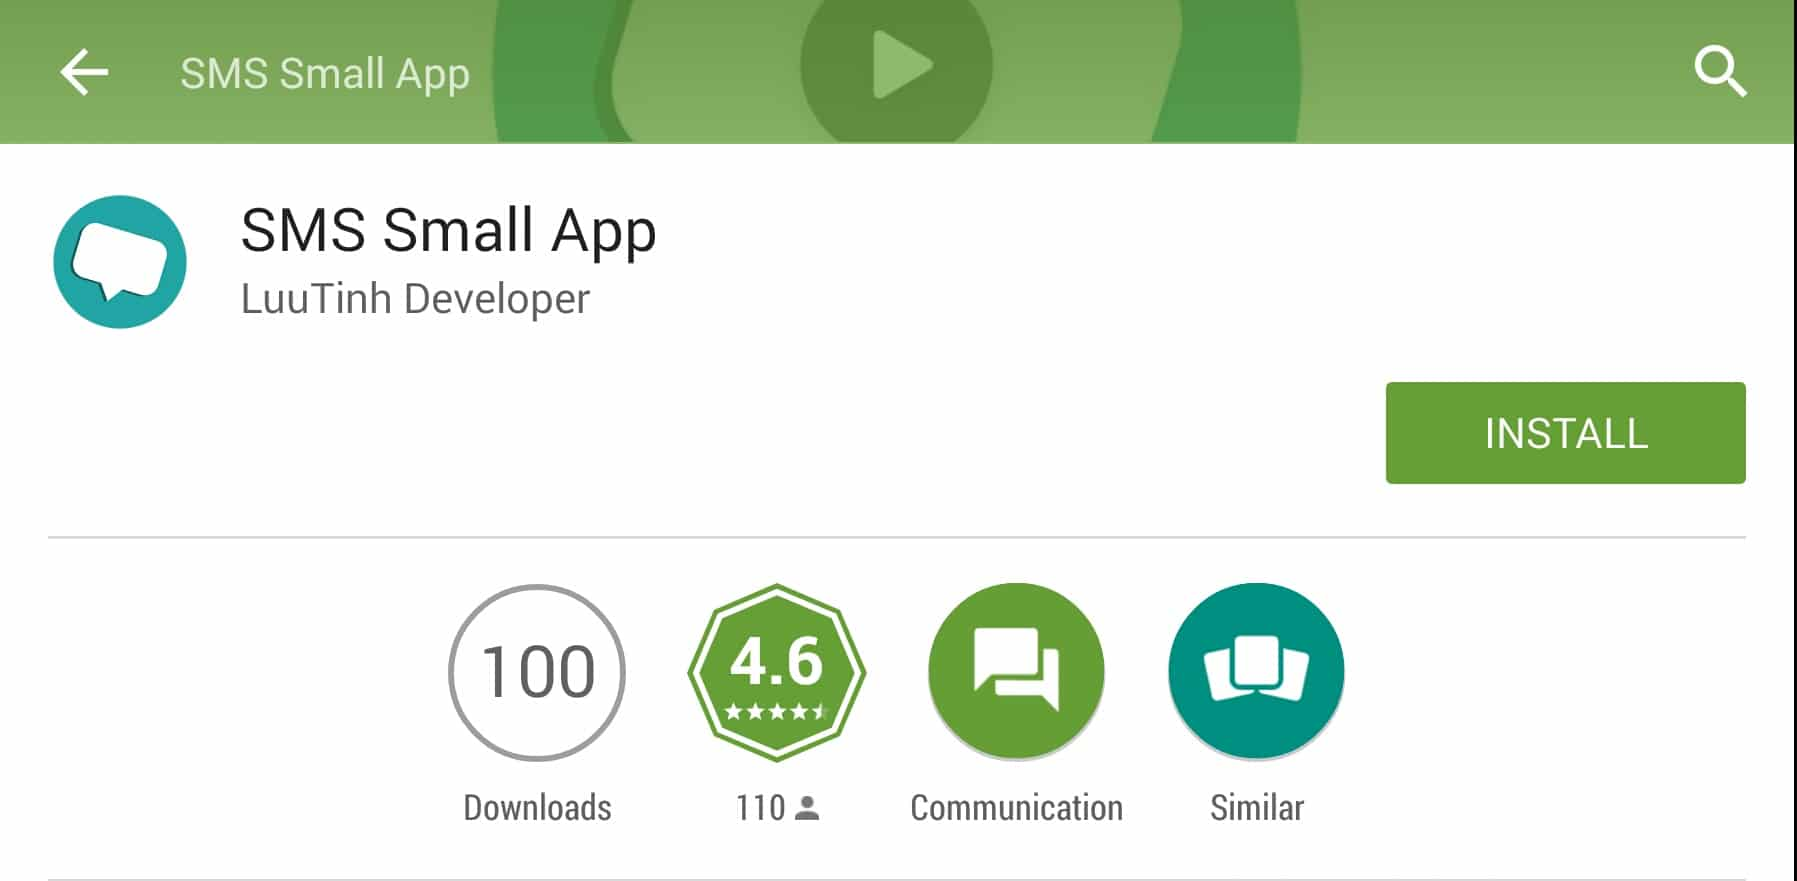 SMS Small App